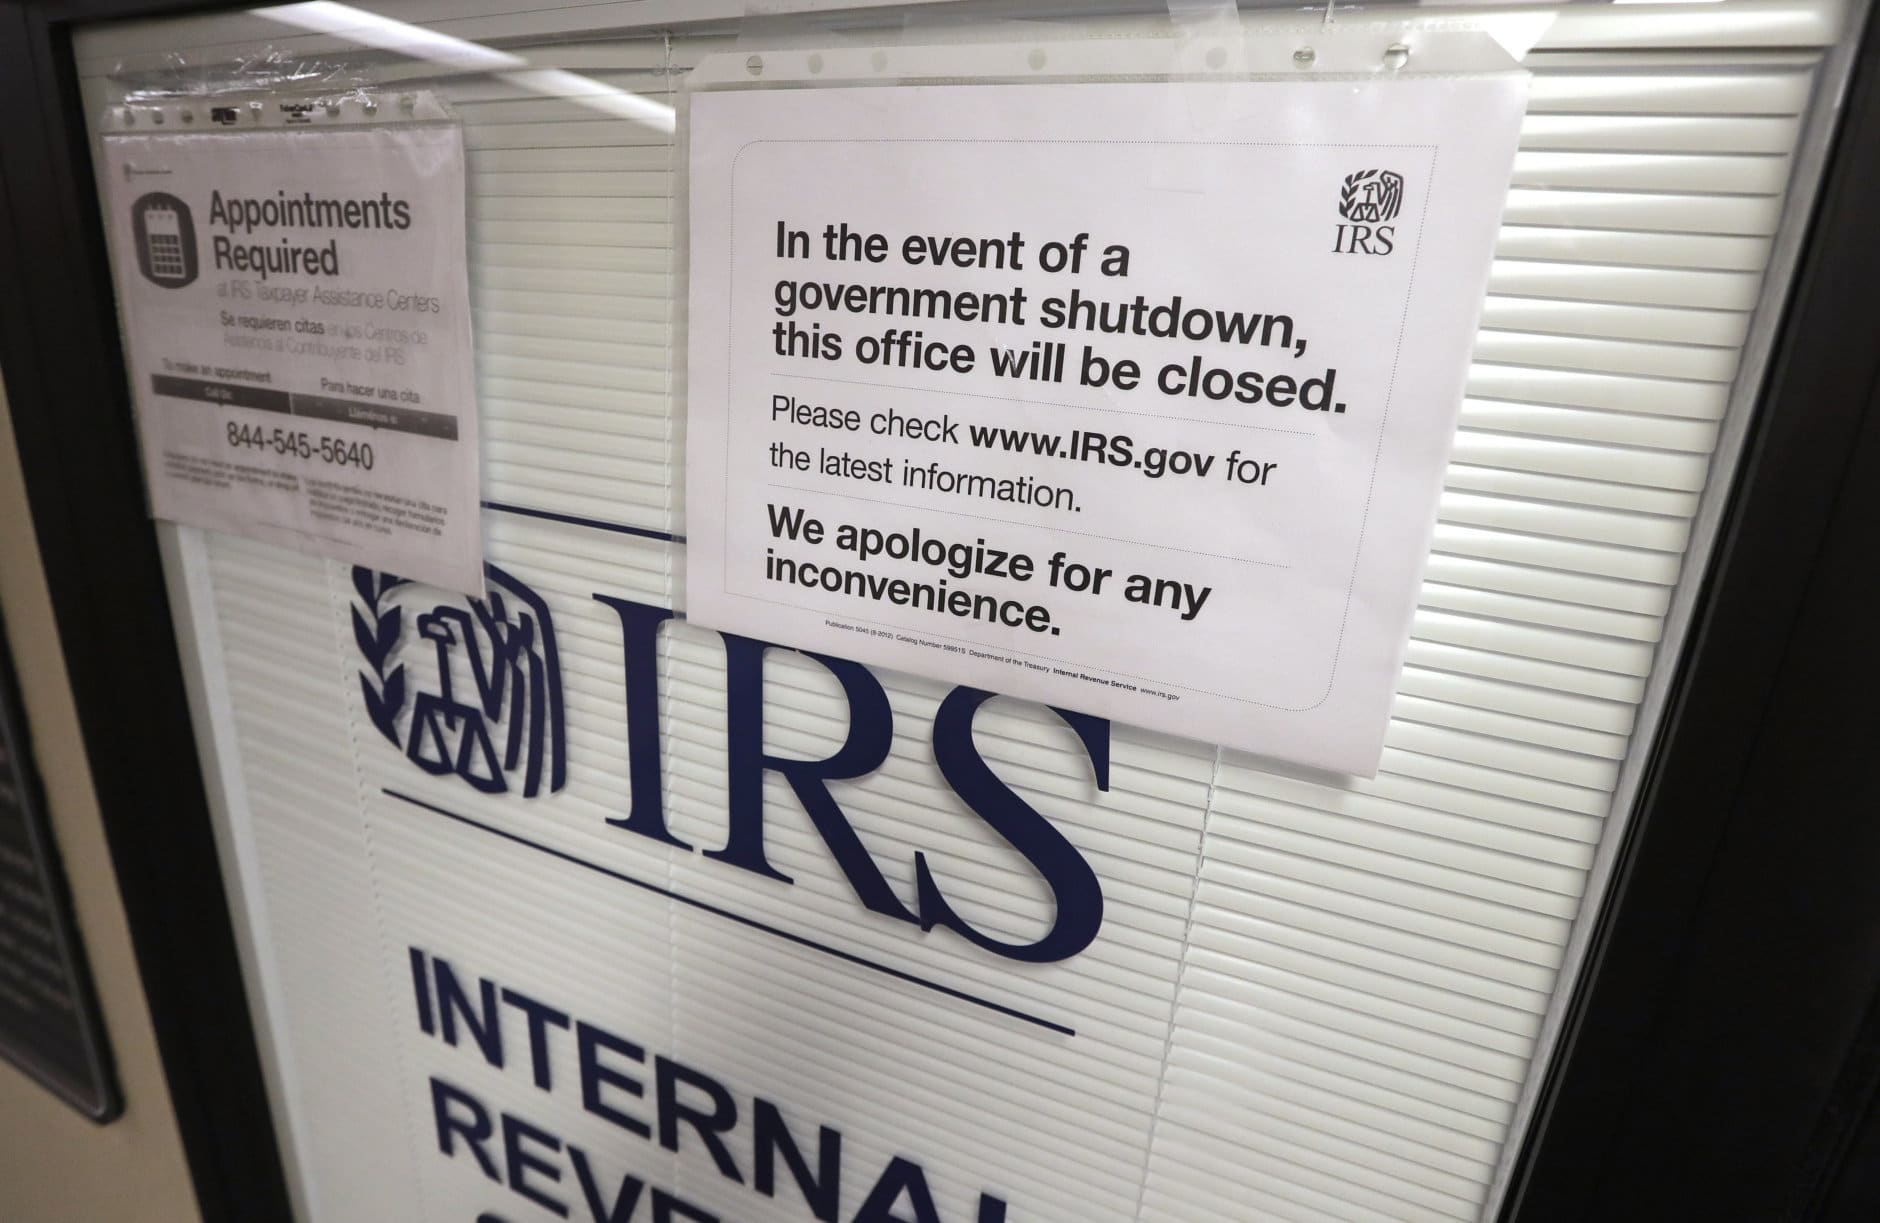 Doors at the Internal Revenue Service (IRS) in the Henry M. Jackson Federal Building are locked and covered with blinds as a sign posted advises that the office will be closed during the partial government shutdown Wednesday, Jan. 16, 2019, in Seattle. The shutdown is in its fourth week with no end in sight. (AP Photo/Elaine Thompson)